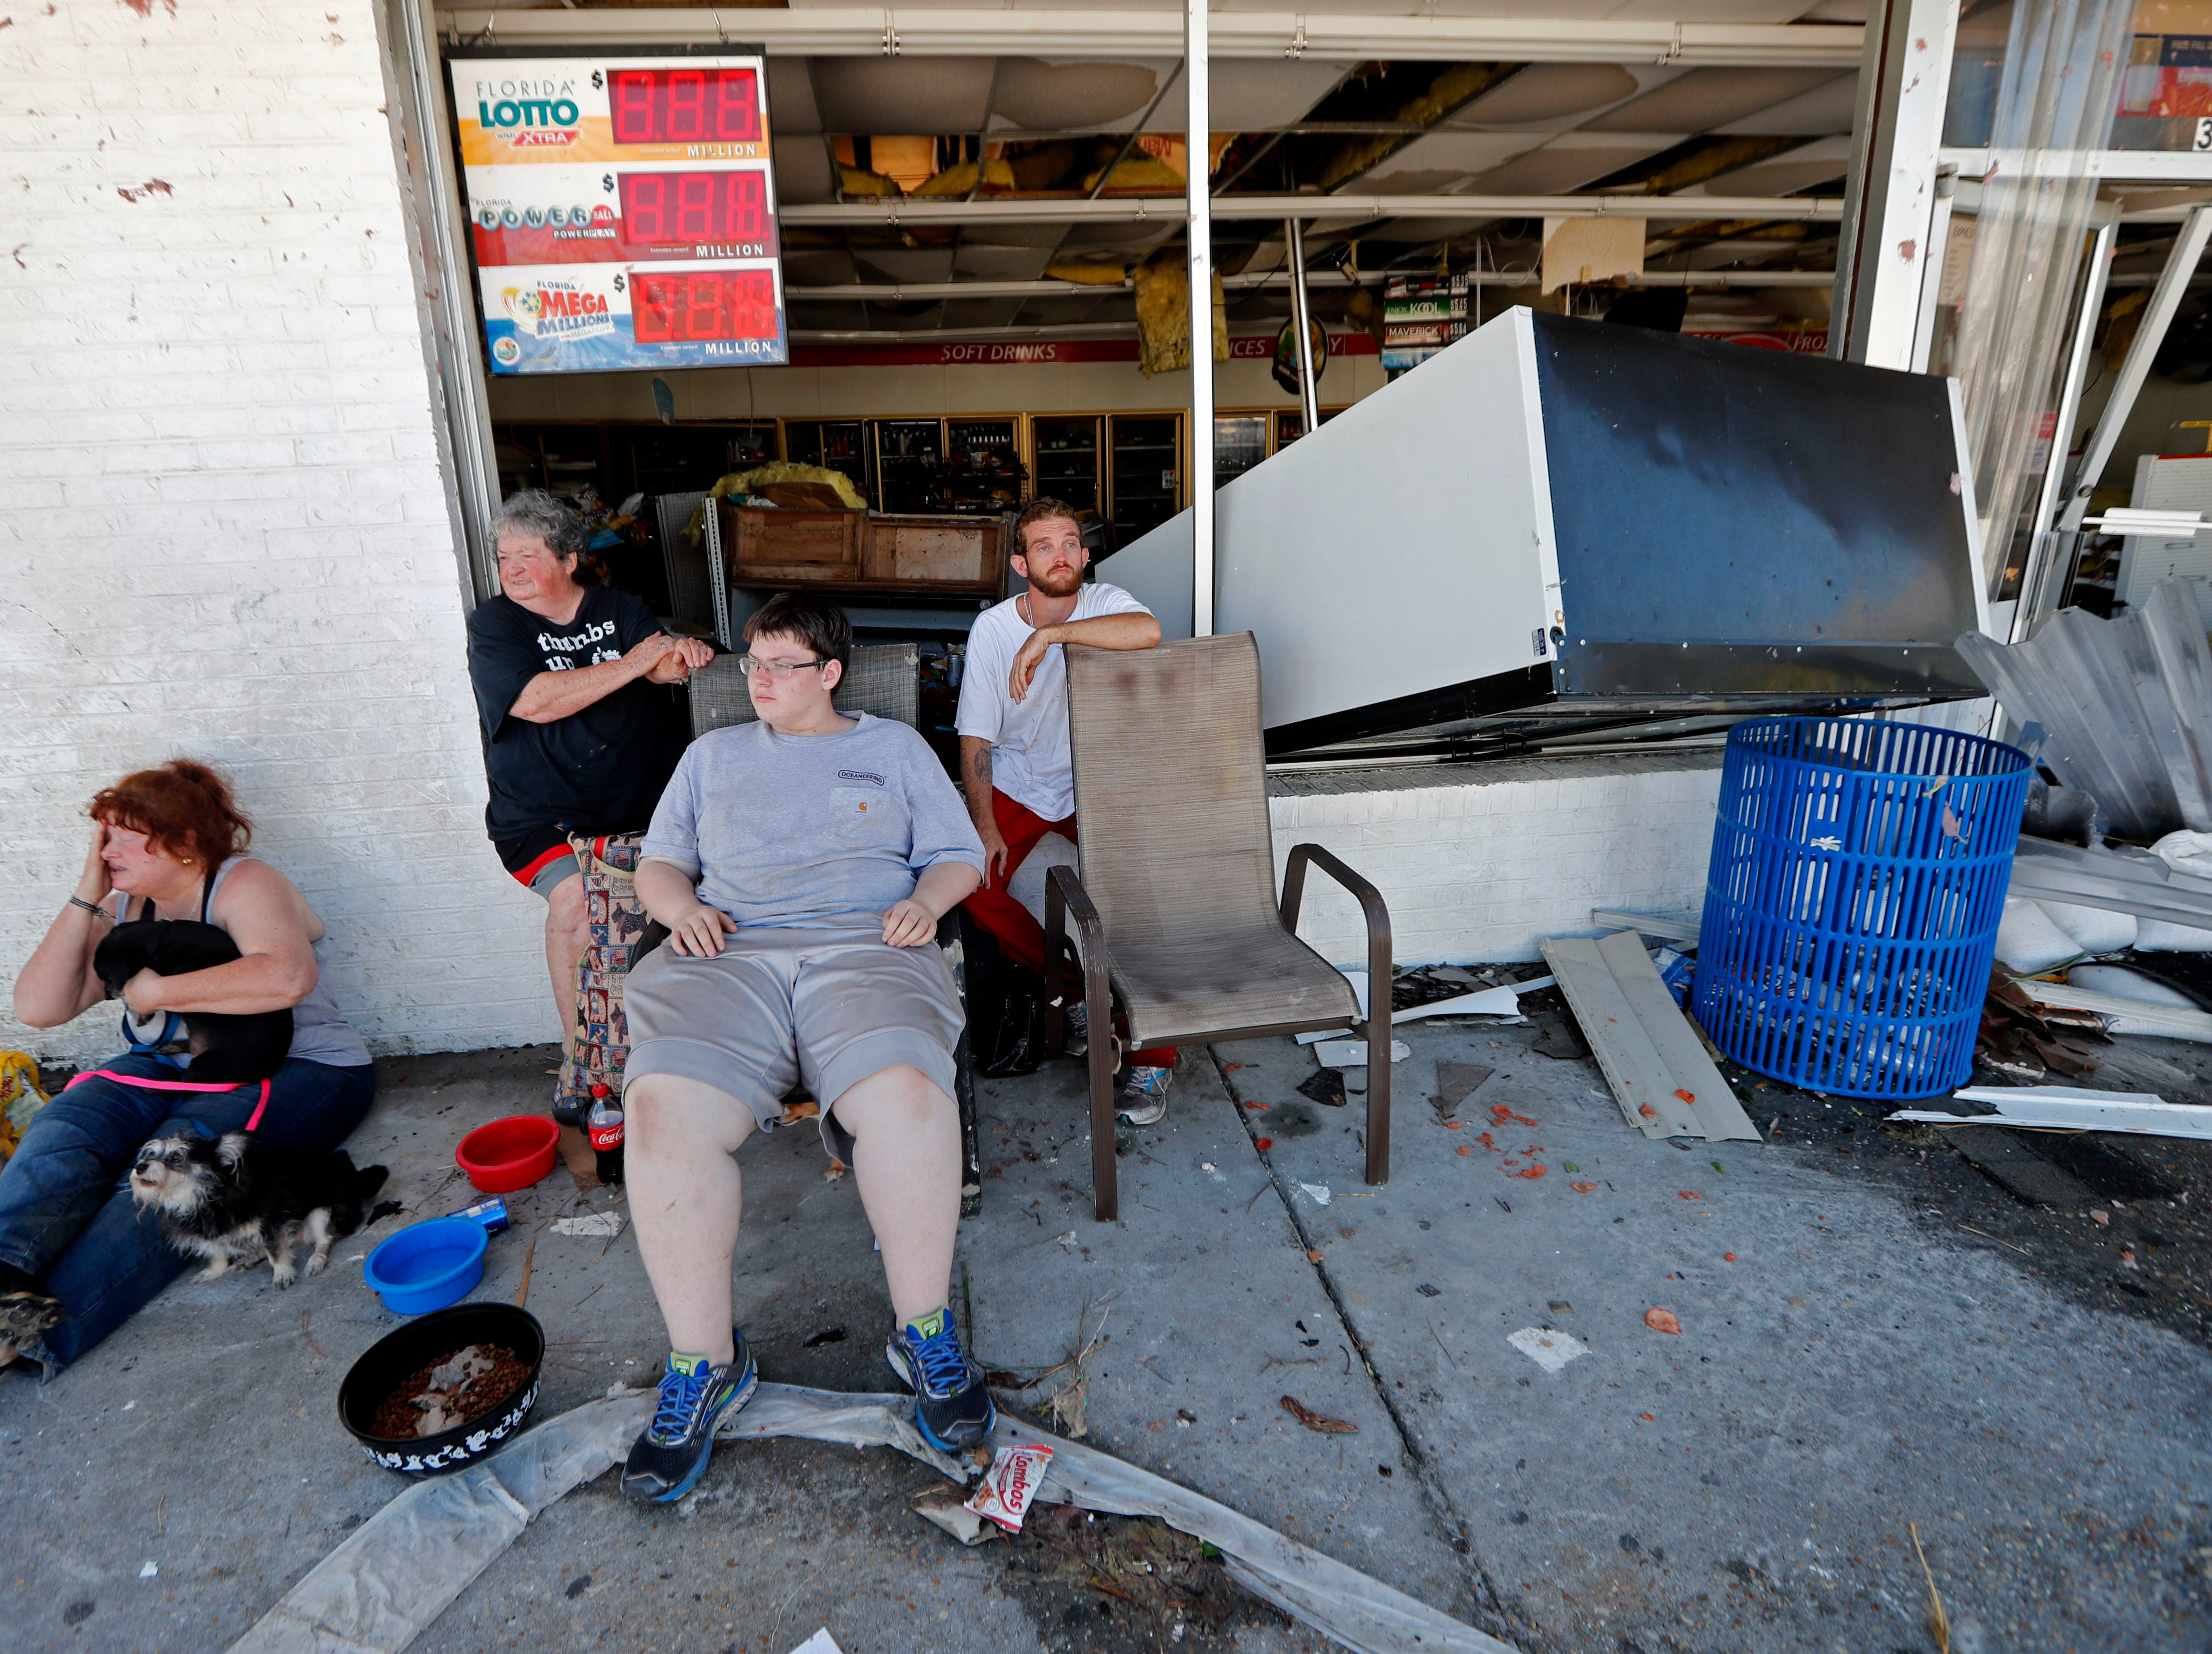 Dawn Vickers, left, her mother Patsy Vickers, son Ryder Vickers, and friend Robert Brock, right, who rode out Hurricane Michael in their now-destroyed home, sit in front of a damaged convenience store with nowhere to go, in Michael's aftermath, in Mexico Beach, Fla., Thursday, Oct. 11, 2018. Their house floated away from its foundation in the storm and they escaped the water by wading through a window. (AP Photo/Gerald Herbert)